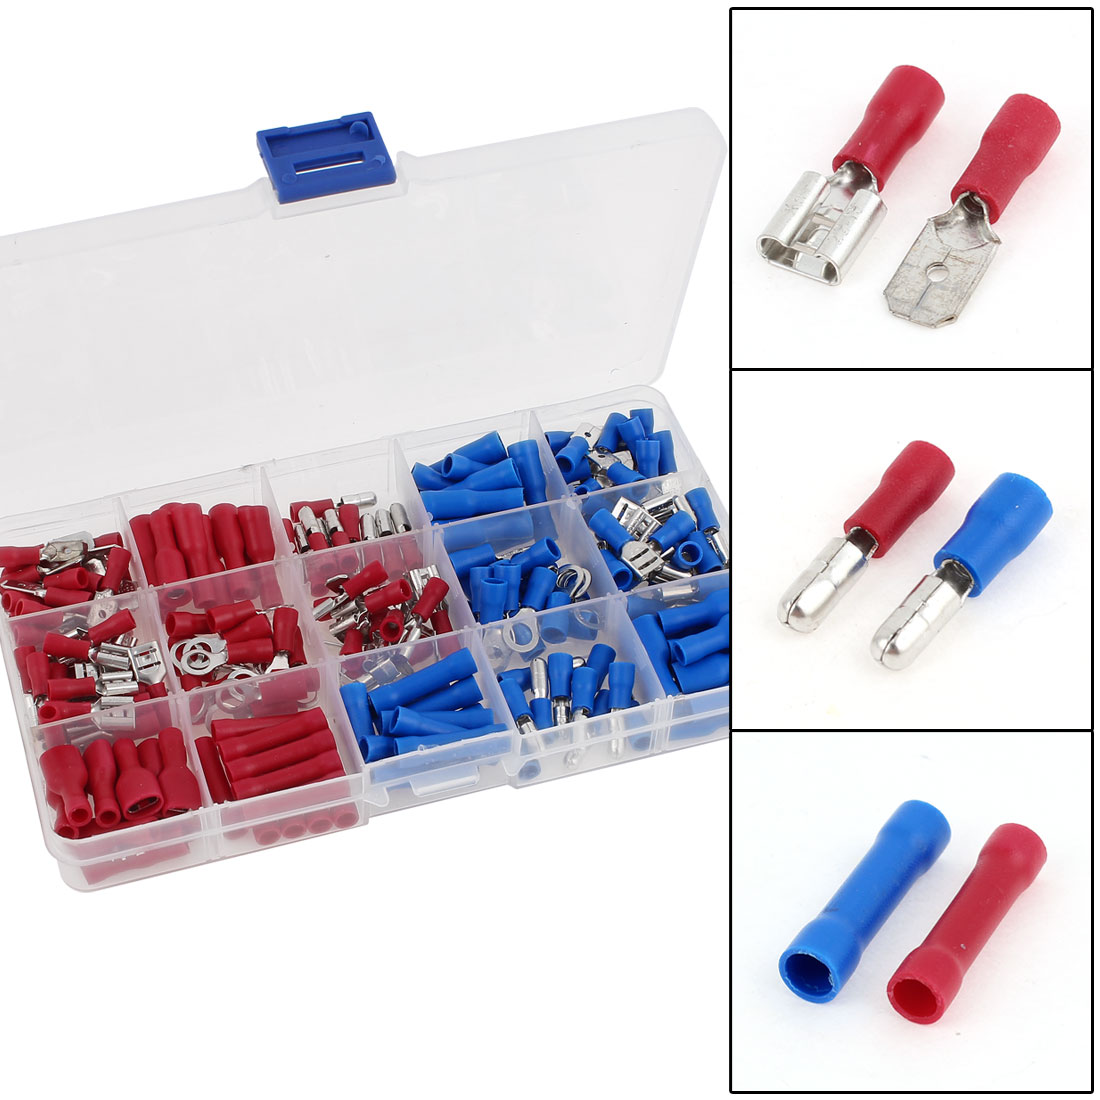 200 Pcs Wire Connector Insulated Crimp Terminal Assortment Kit